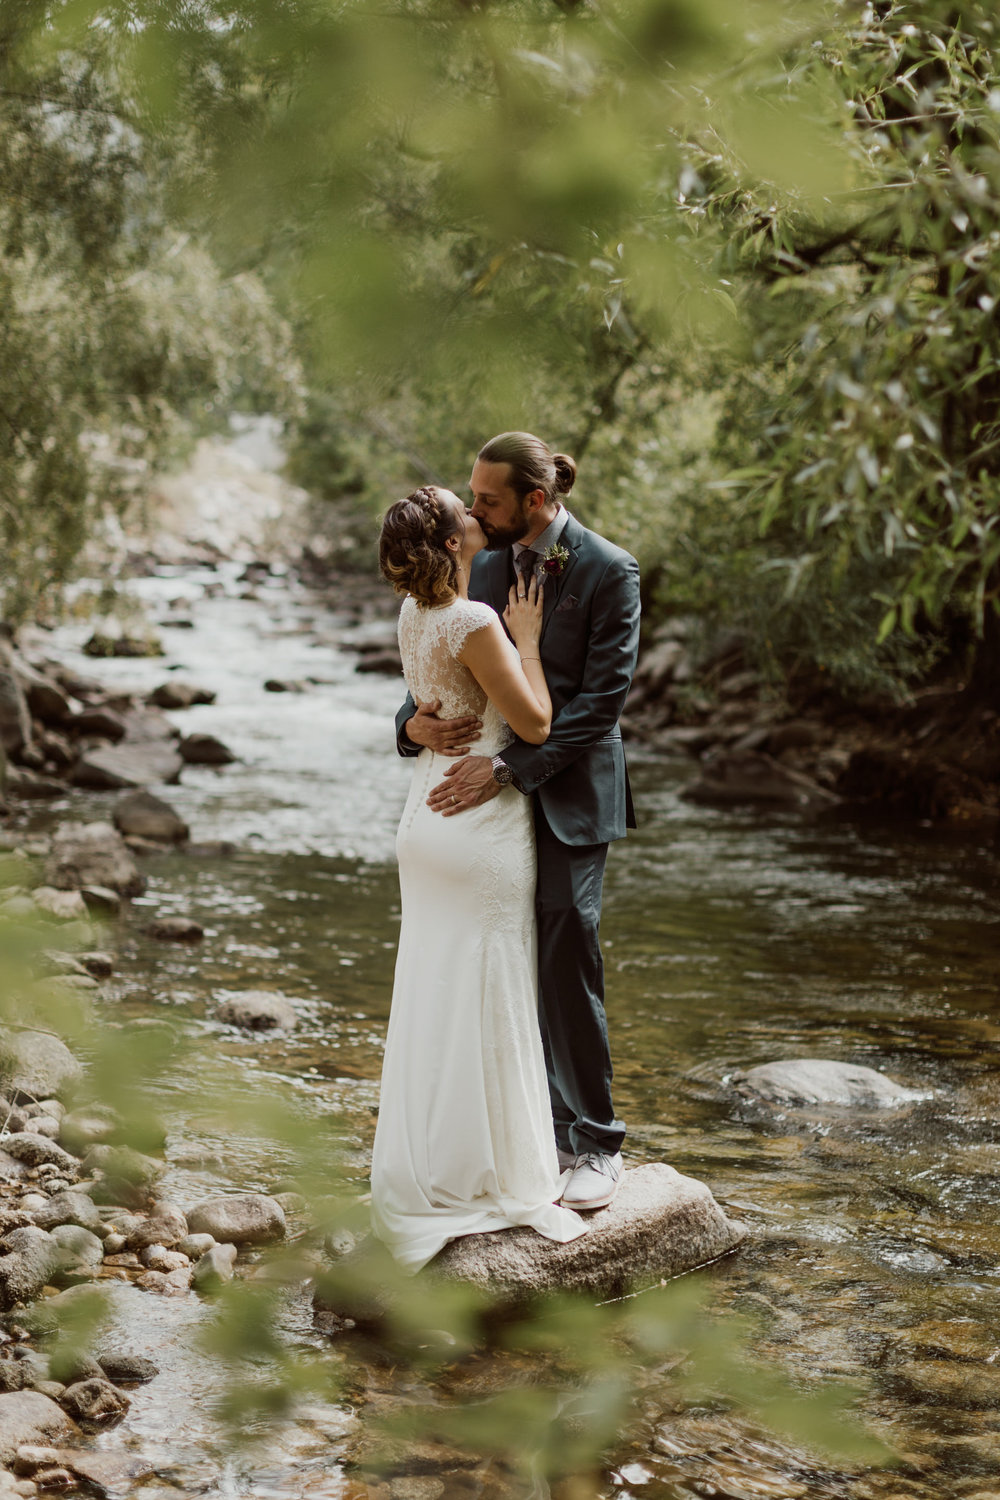 cedarandpines-wedgewood-boulder-creek-wedding-32.jpg